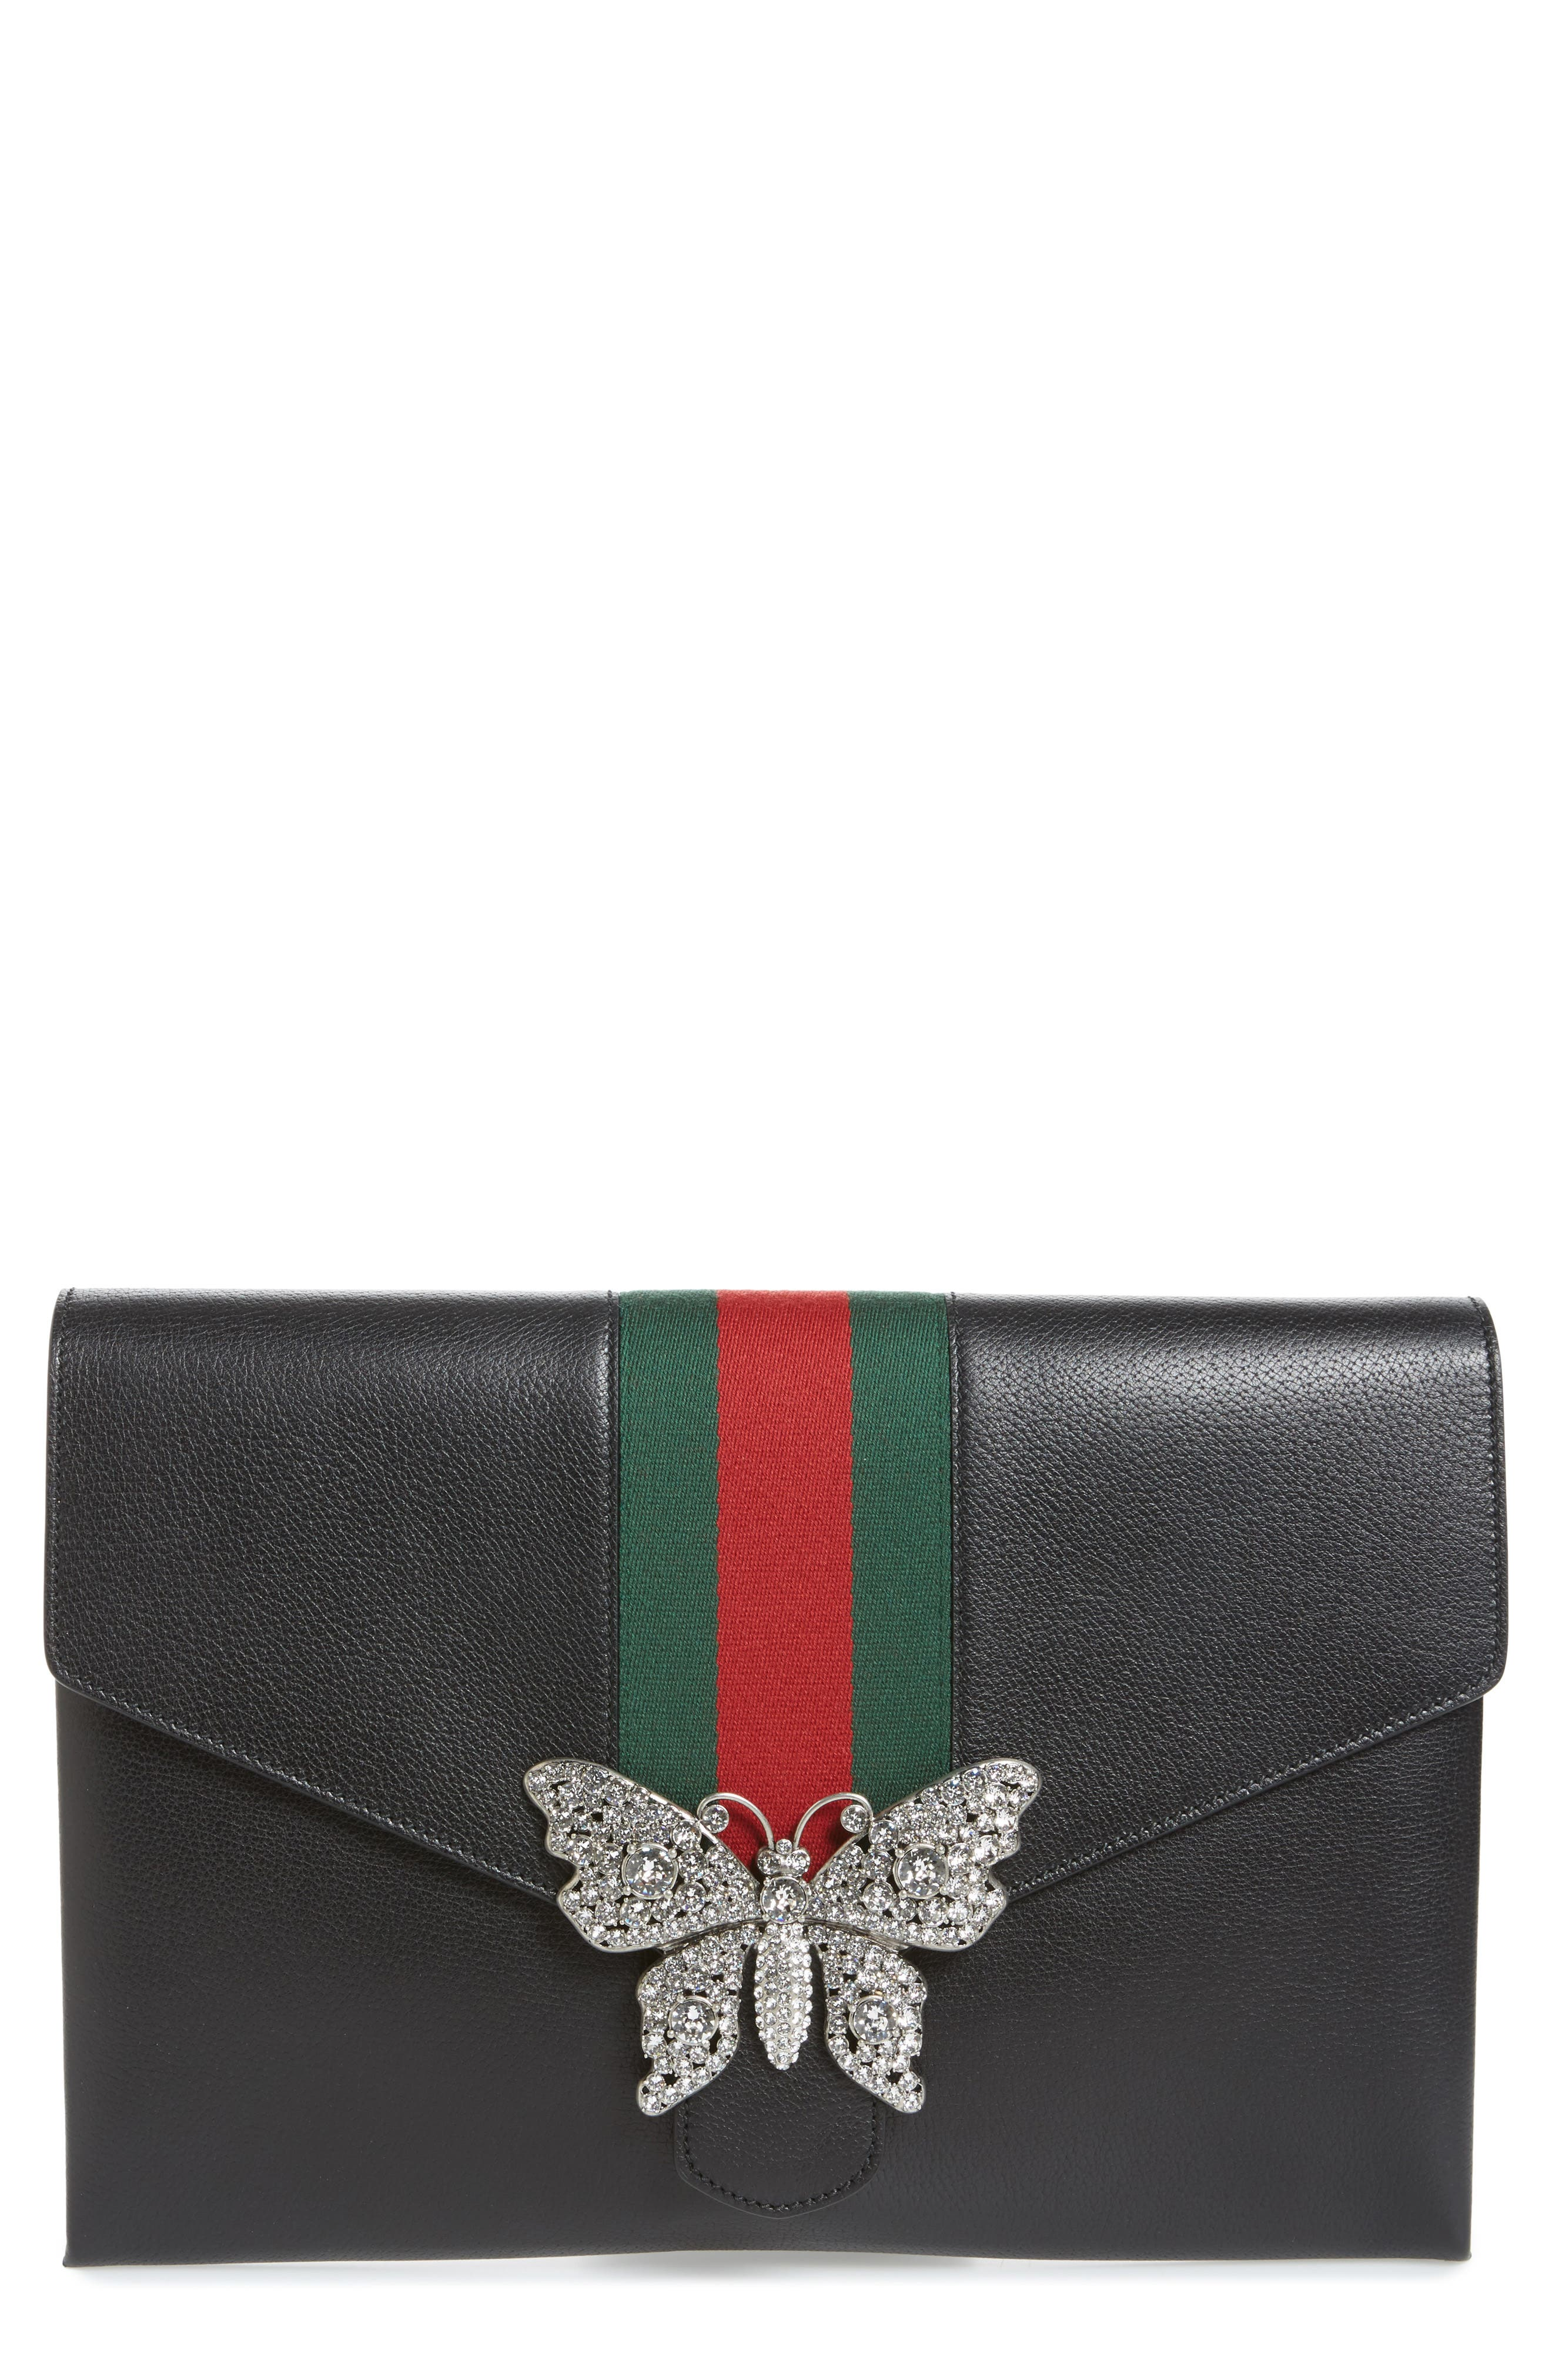 Totem Crystal Embellished Butterfly Leather Clutch,                         Main,                         color,